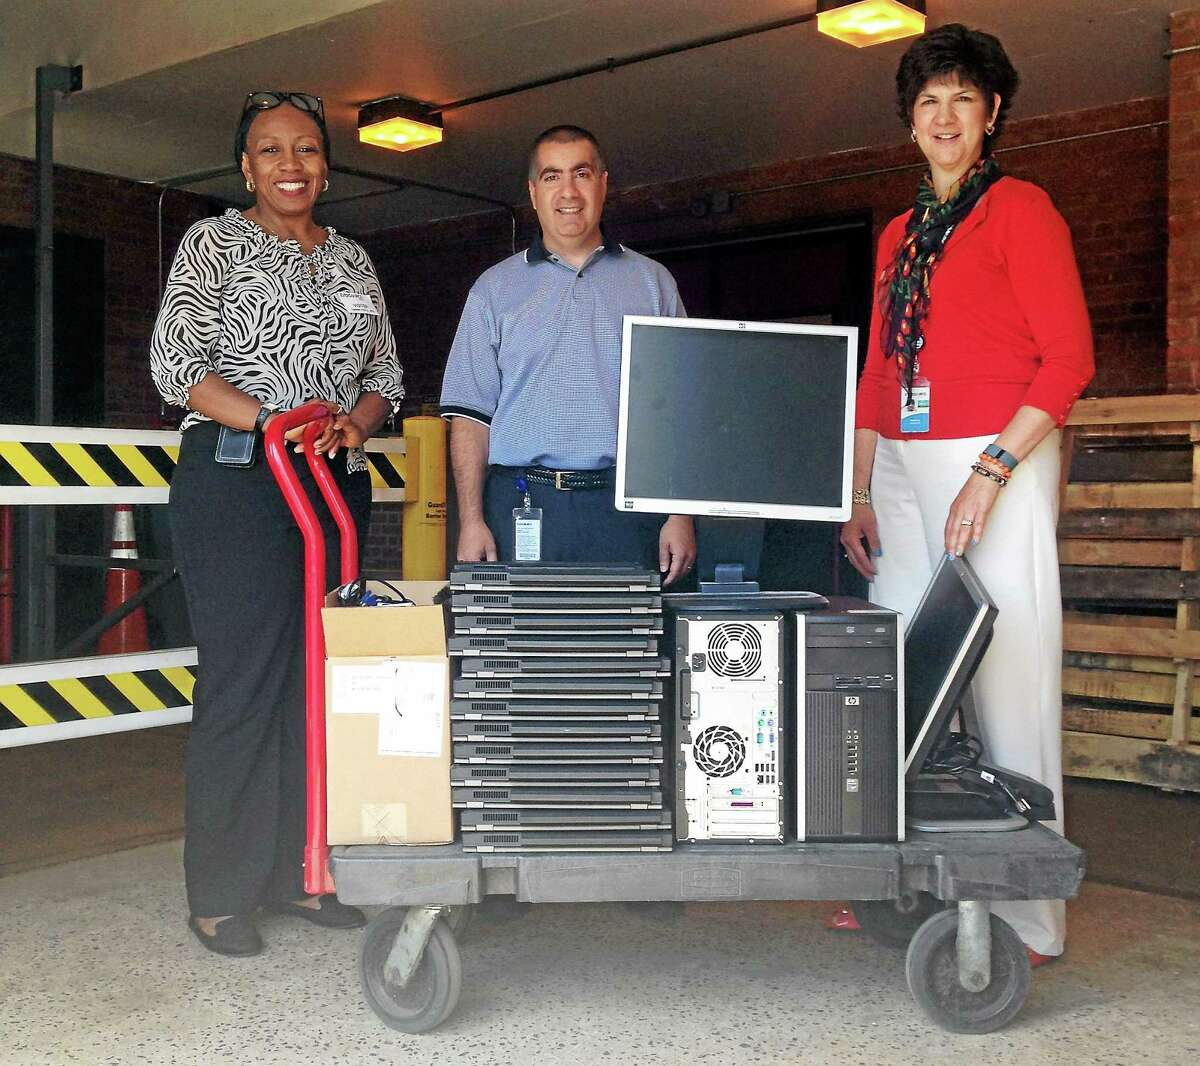 Eversource donated 26 laptops and two desktop computers to the Middlesex Community College Computer Club and Computer Information Technology program. The company's IT manager, Joseph LaBella, and community relations and economic development specialist, Patricia Bandzes, are shown delivering the computers to MxCC Professor Donna Hylton, left.